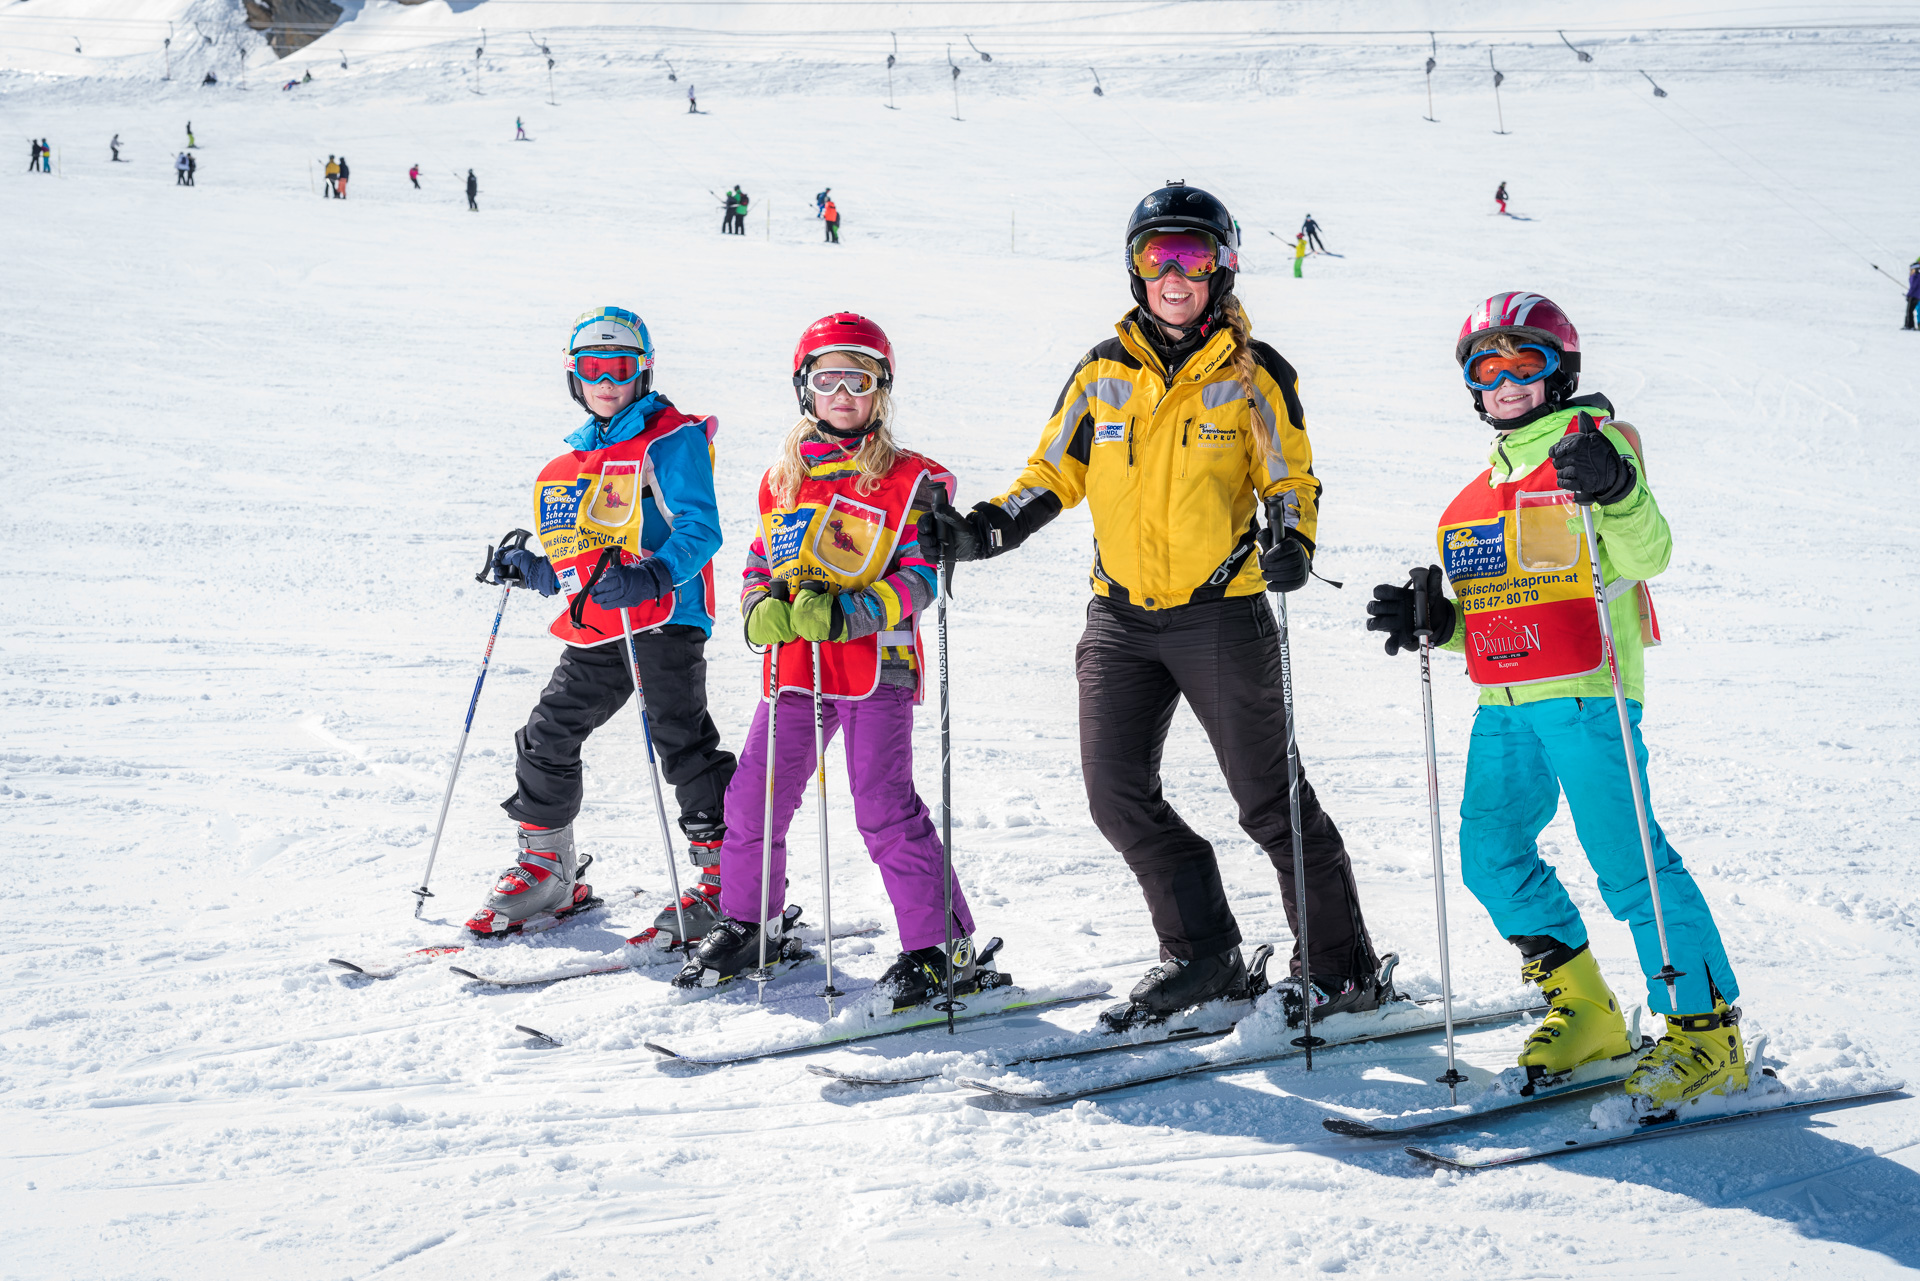 All in One Ski - Kind/Child, 4-6 Tage/Days Kurs/Course & 7 Tage/Days Rent